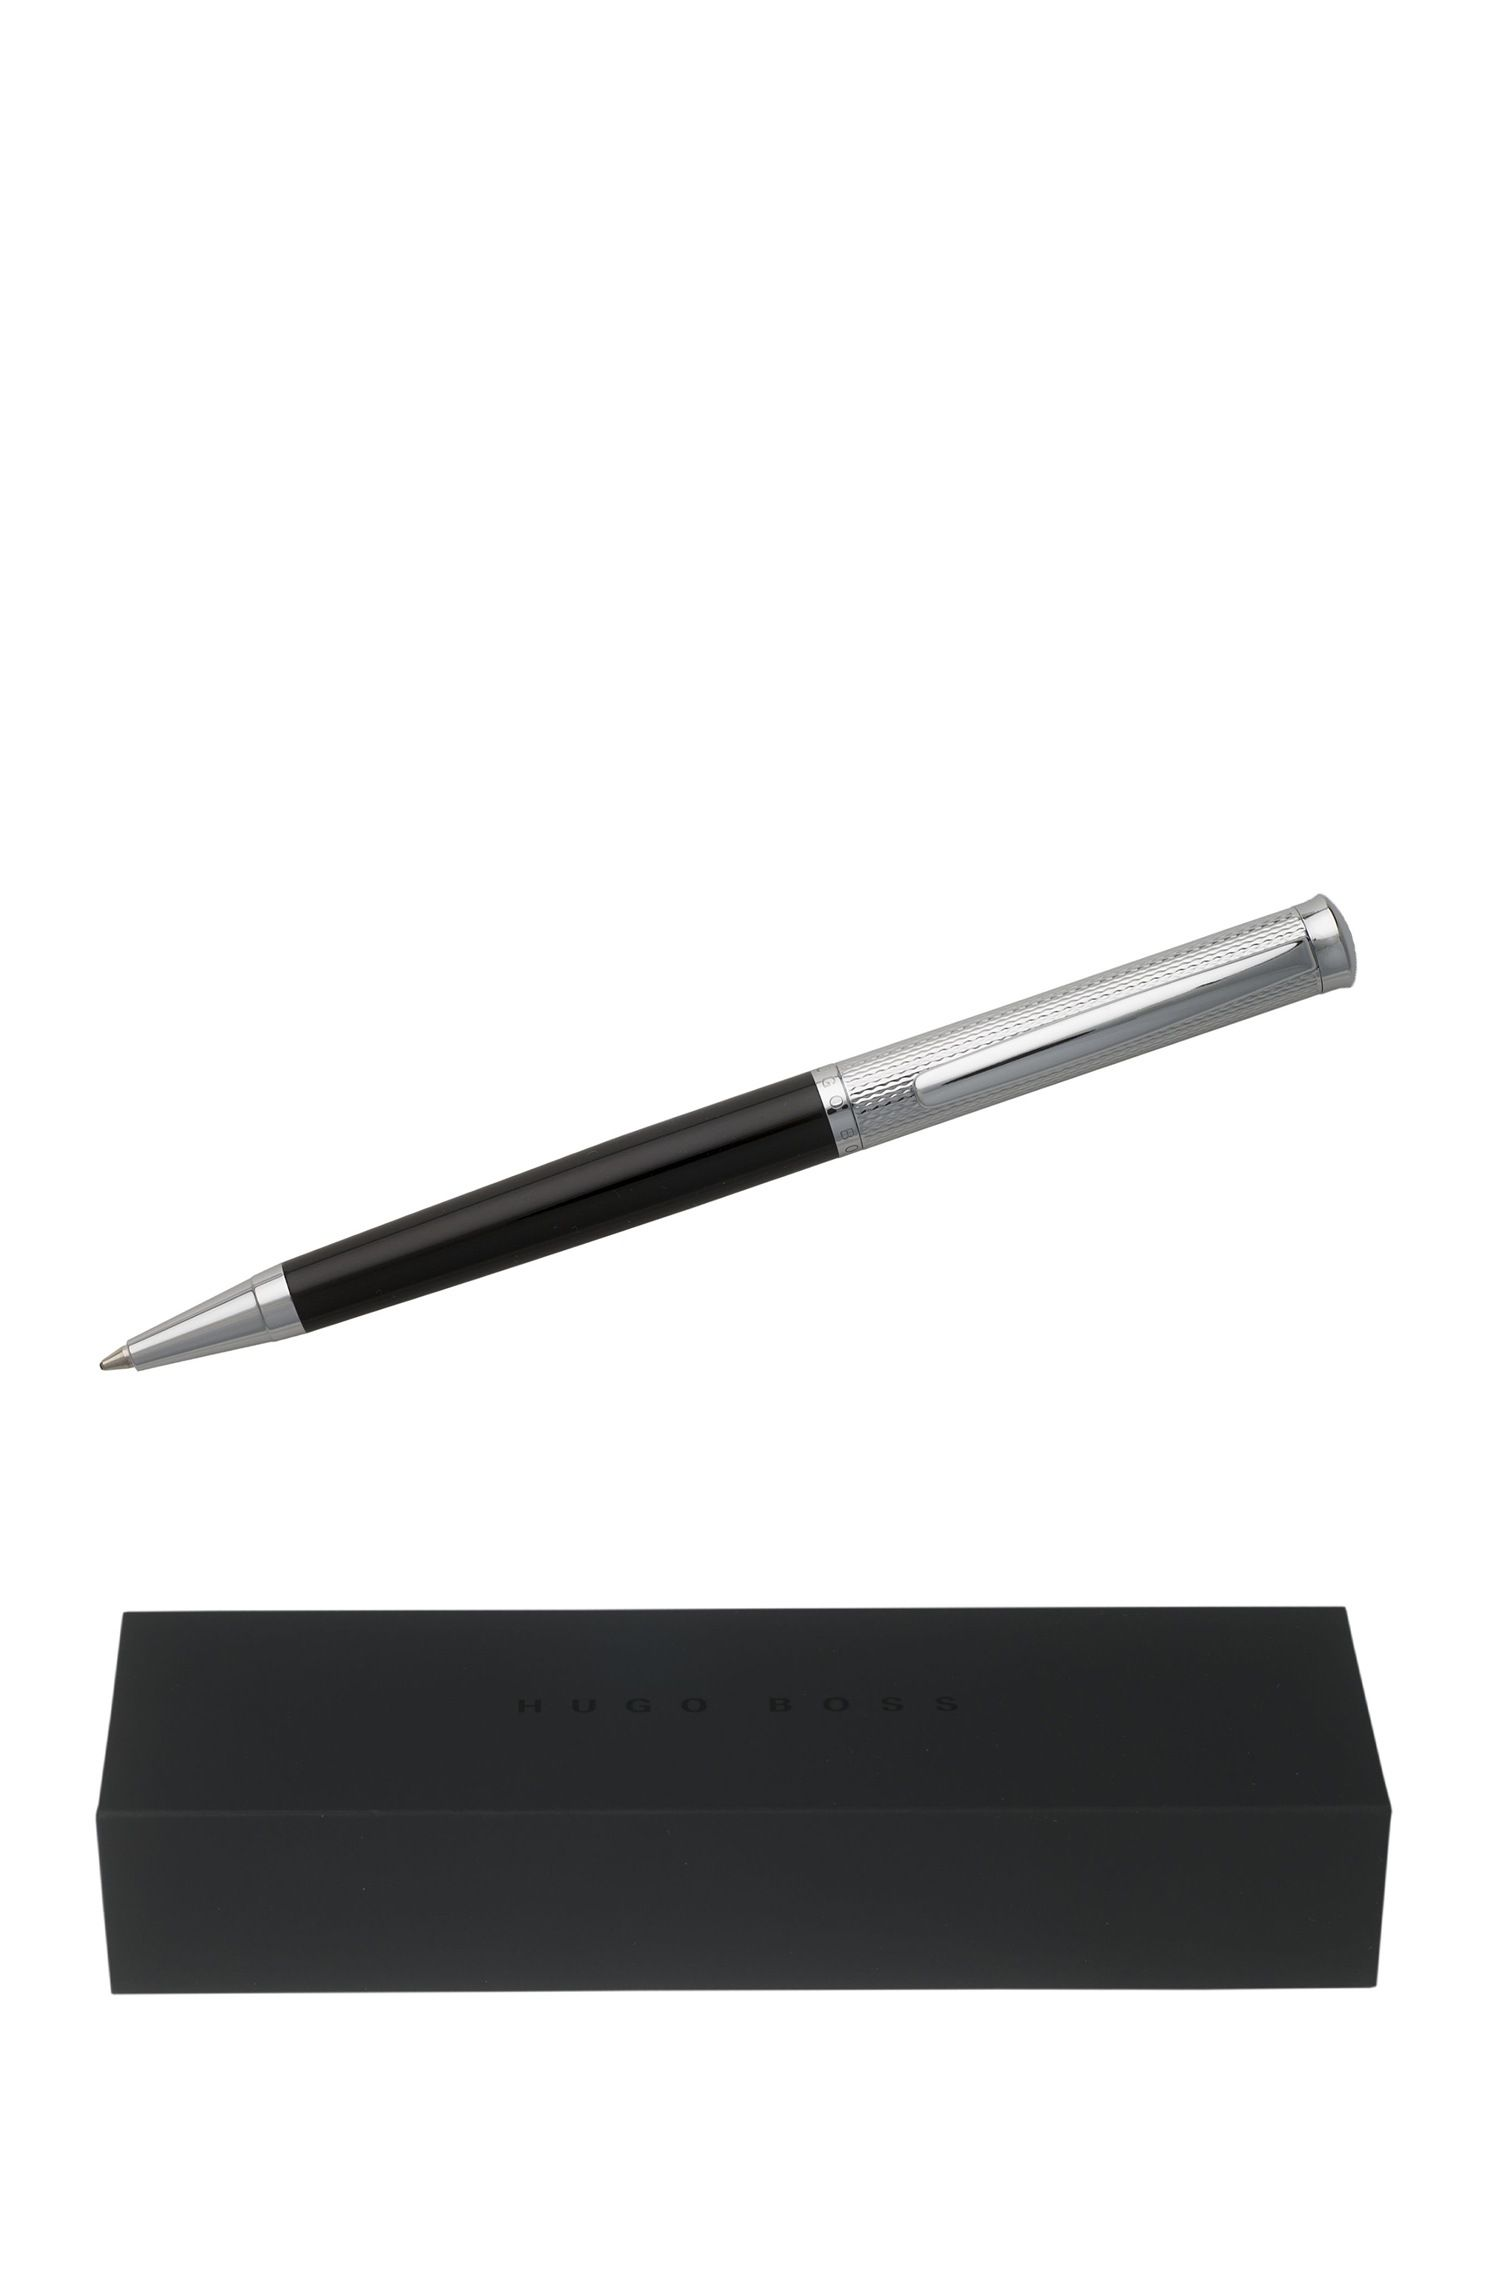 Sophisticated Lacquer Ballpoint Pen | HSW5804